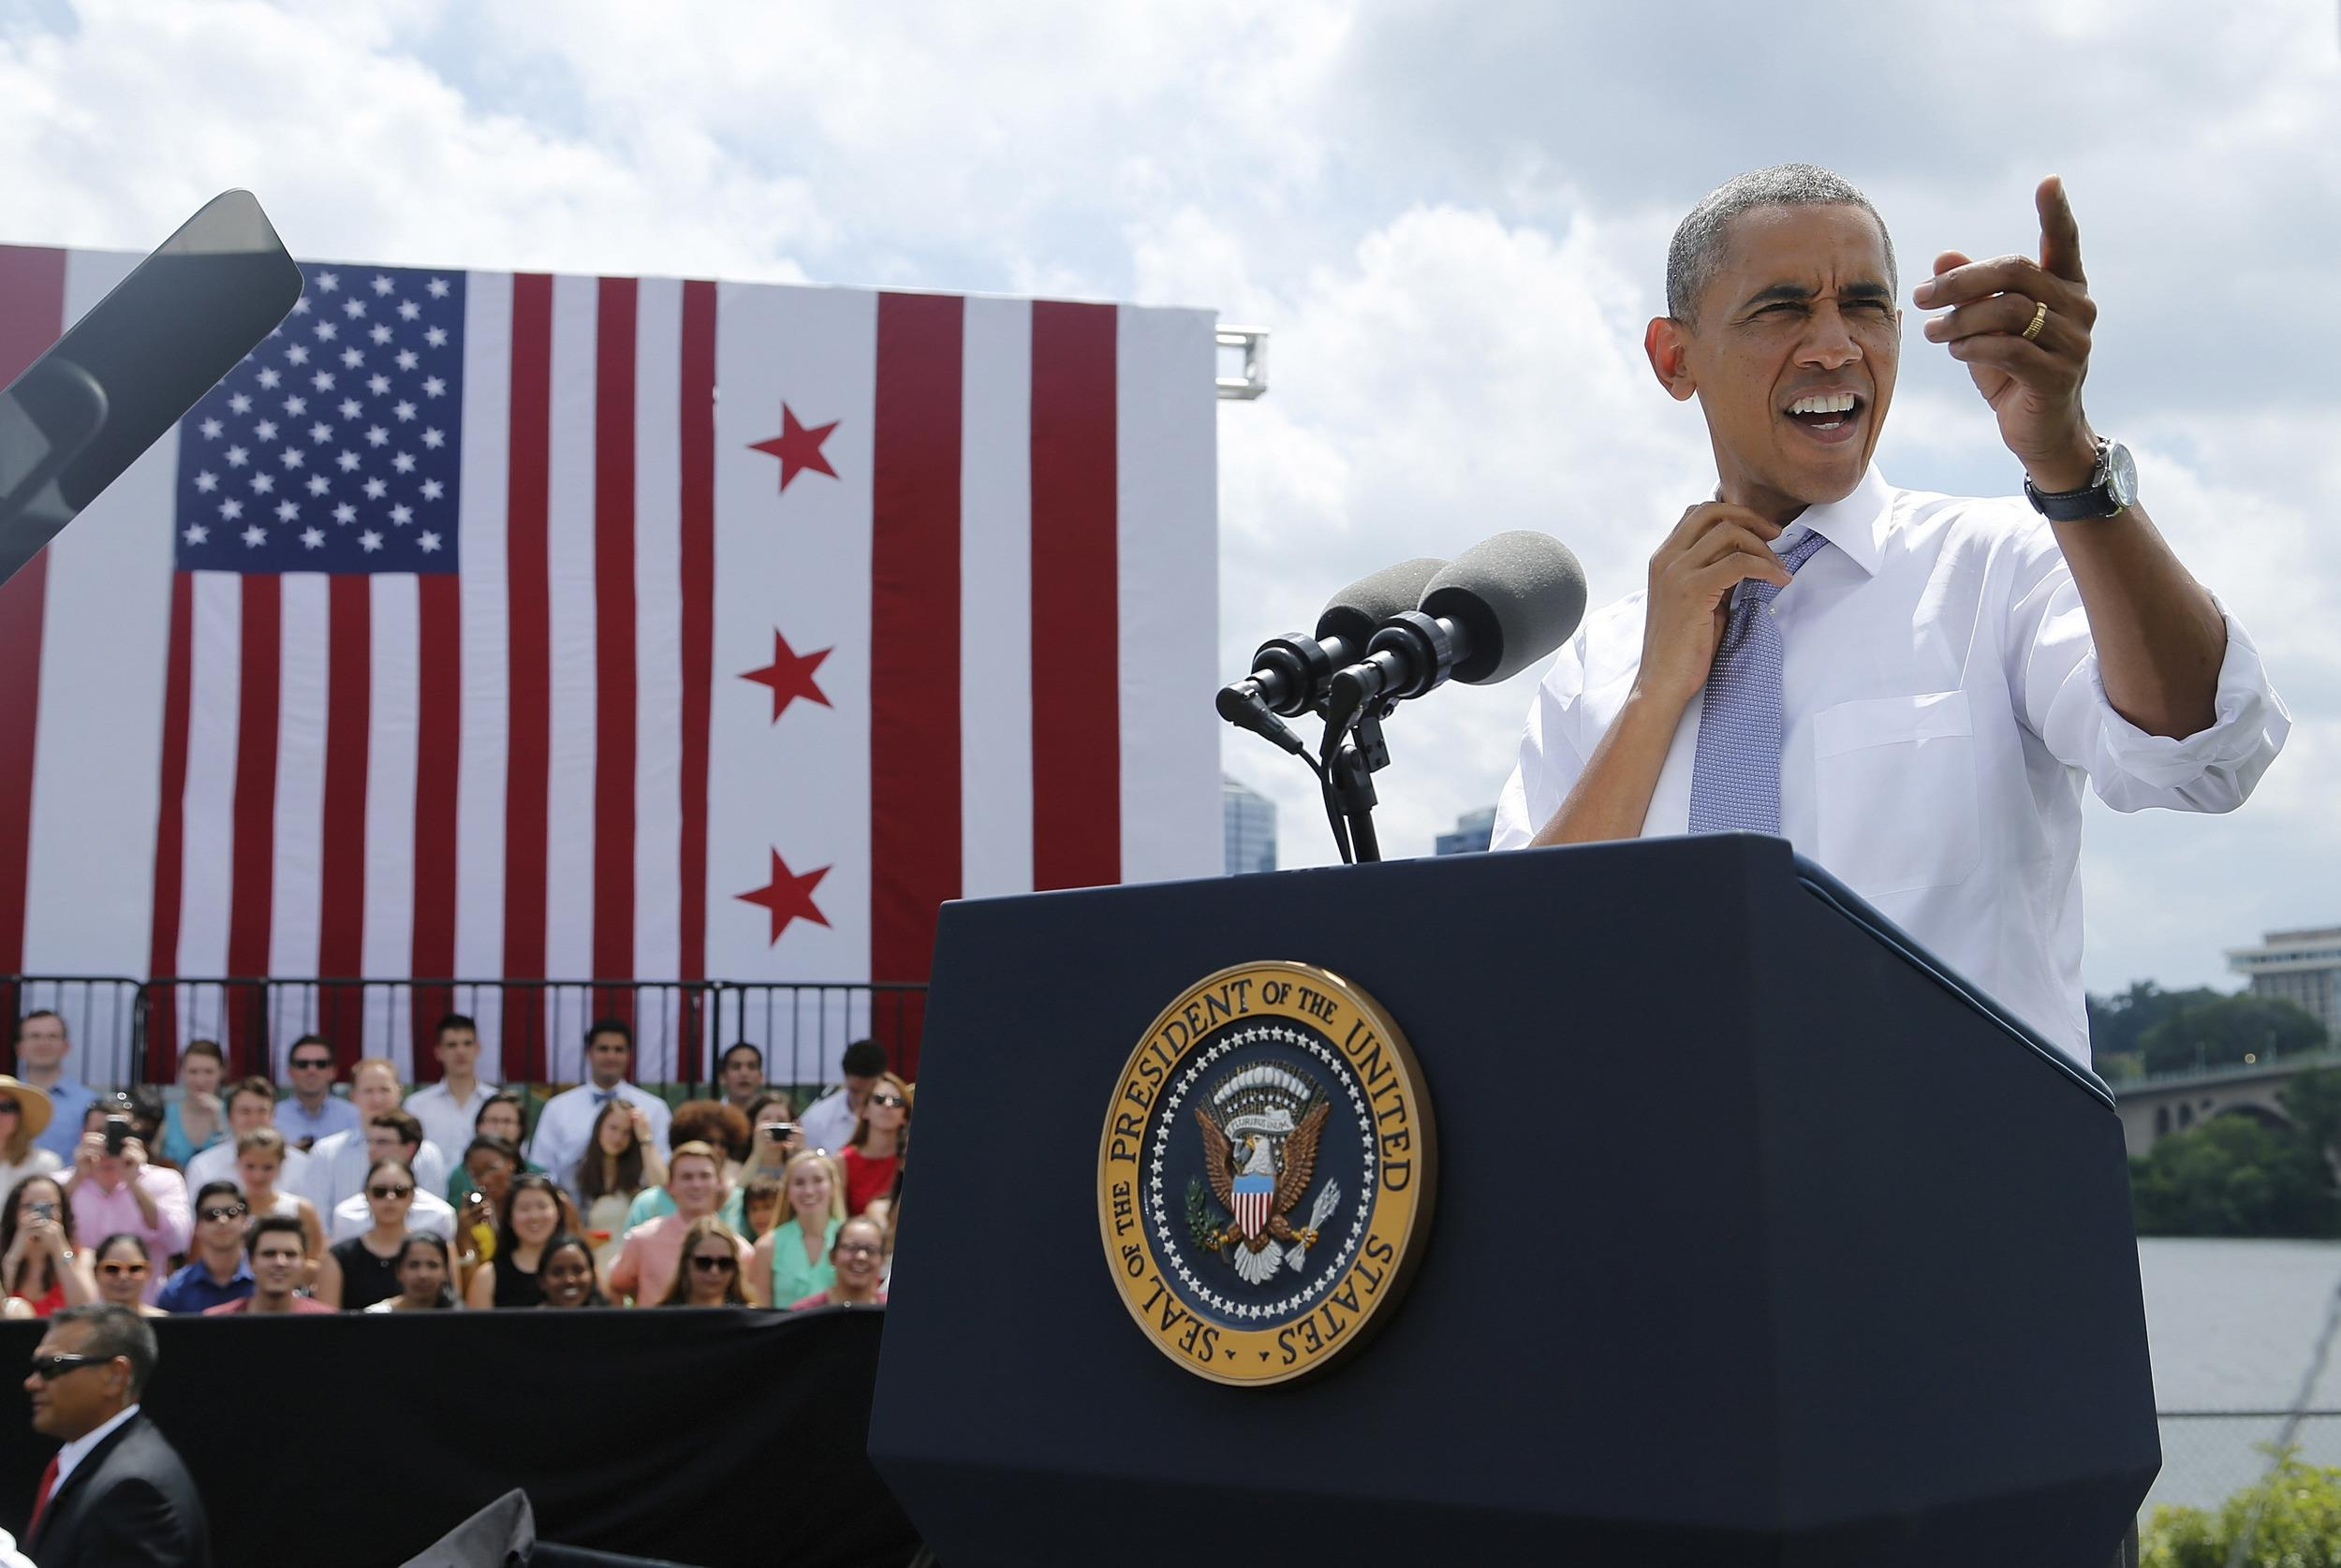 Image: U.S. President Obama loosens his tie in the heat before delivering remarks on the economy at the Georgetown Waterfront Park in Washington